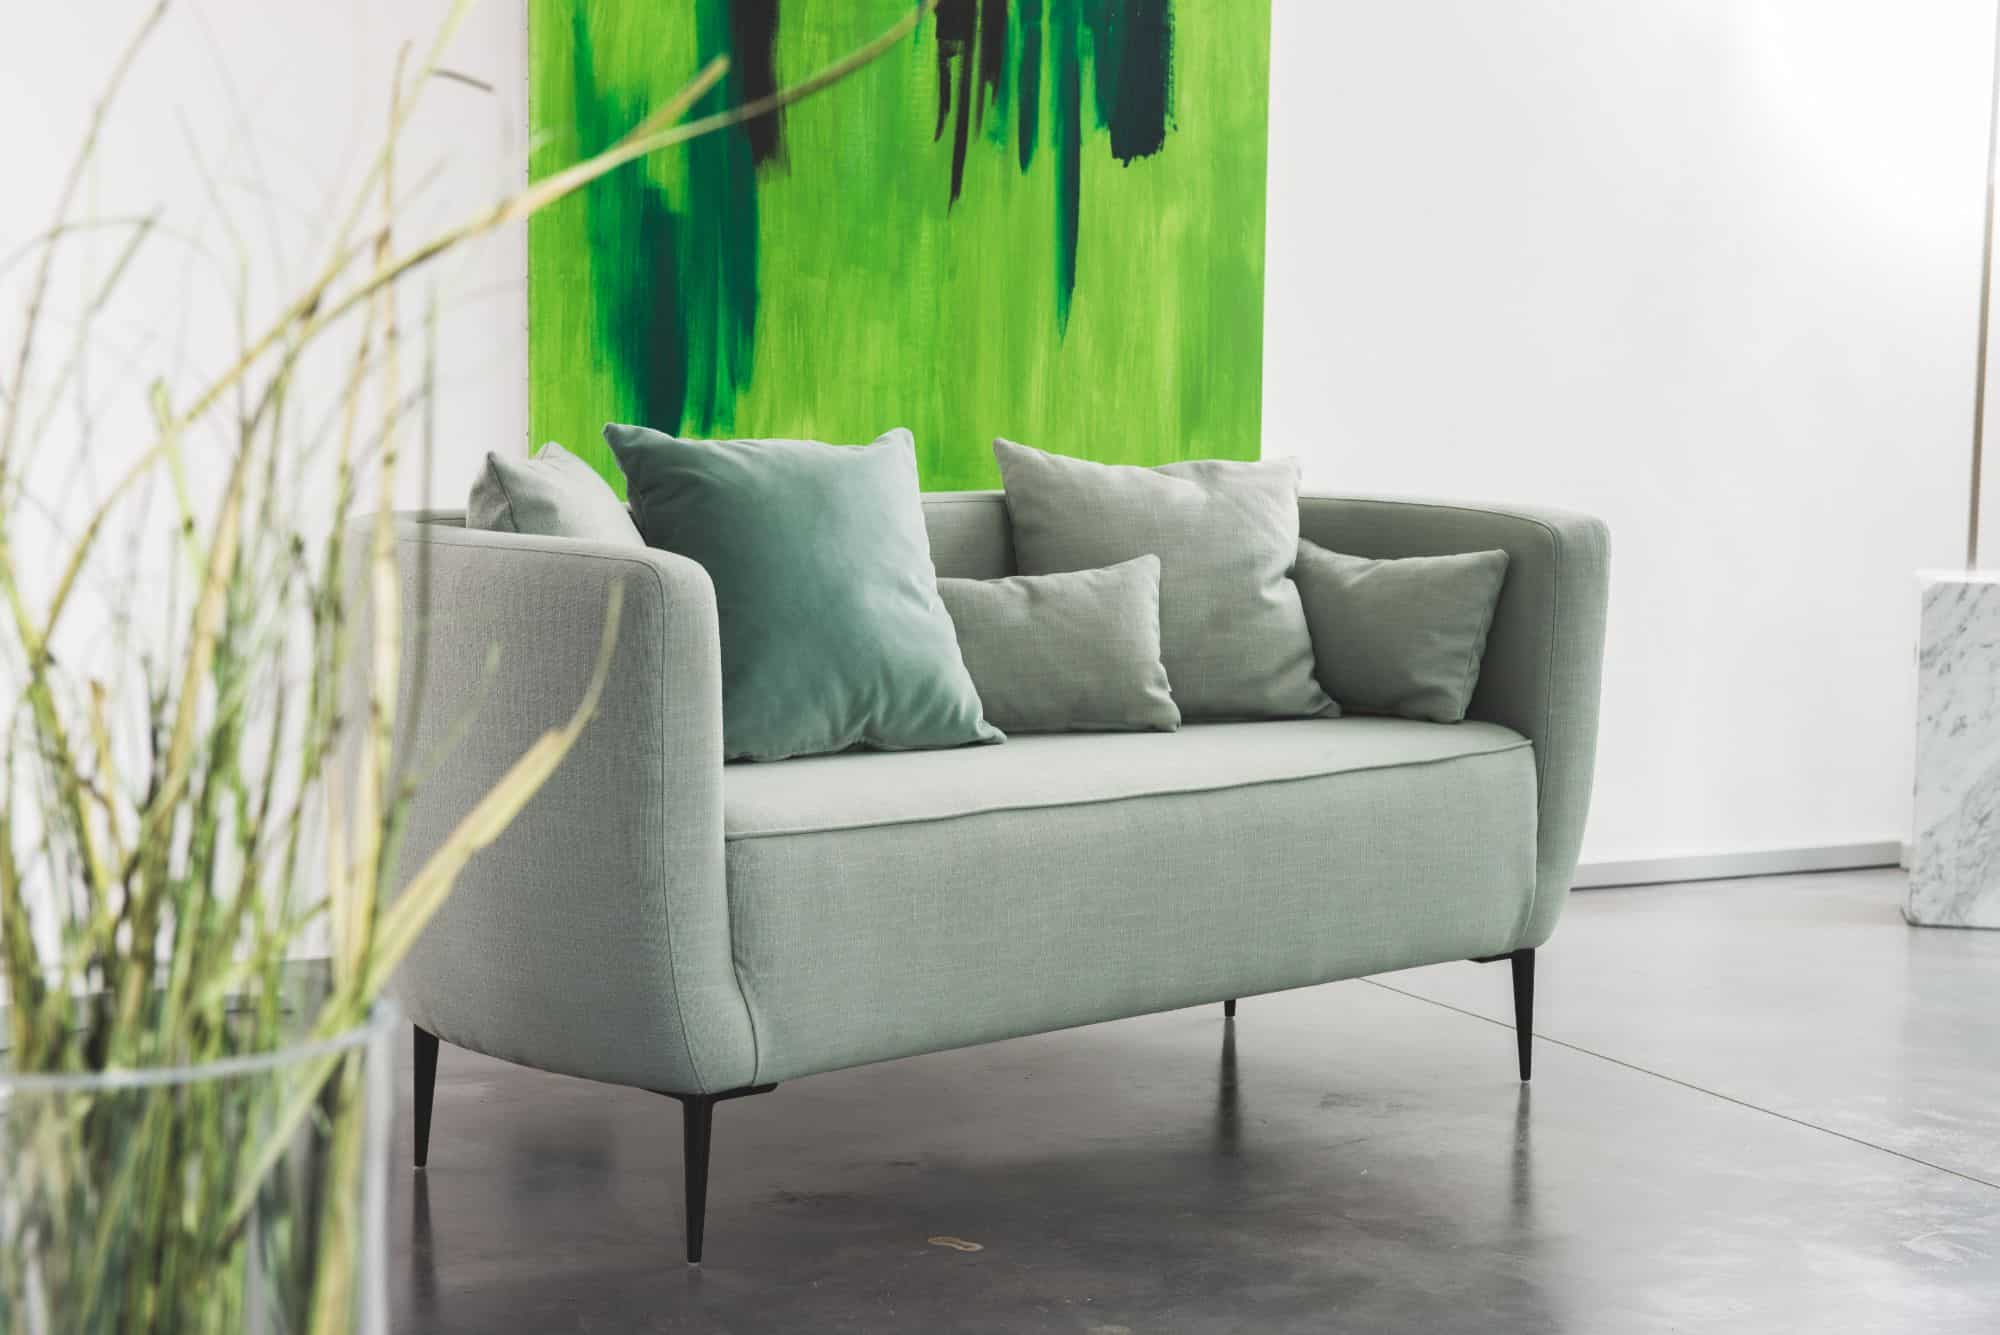 sophisticated living serenity two-seater sofa